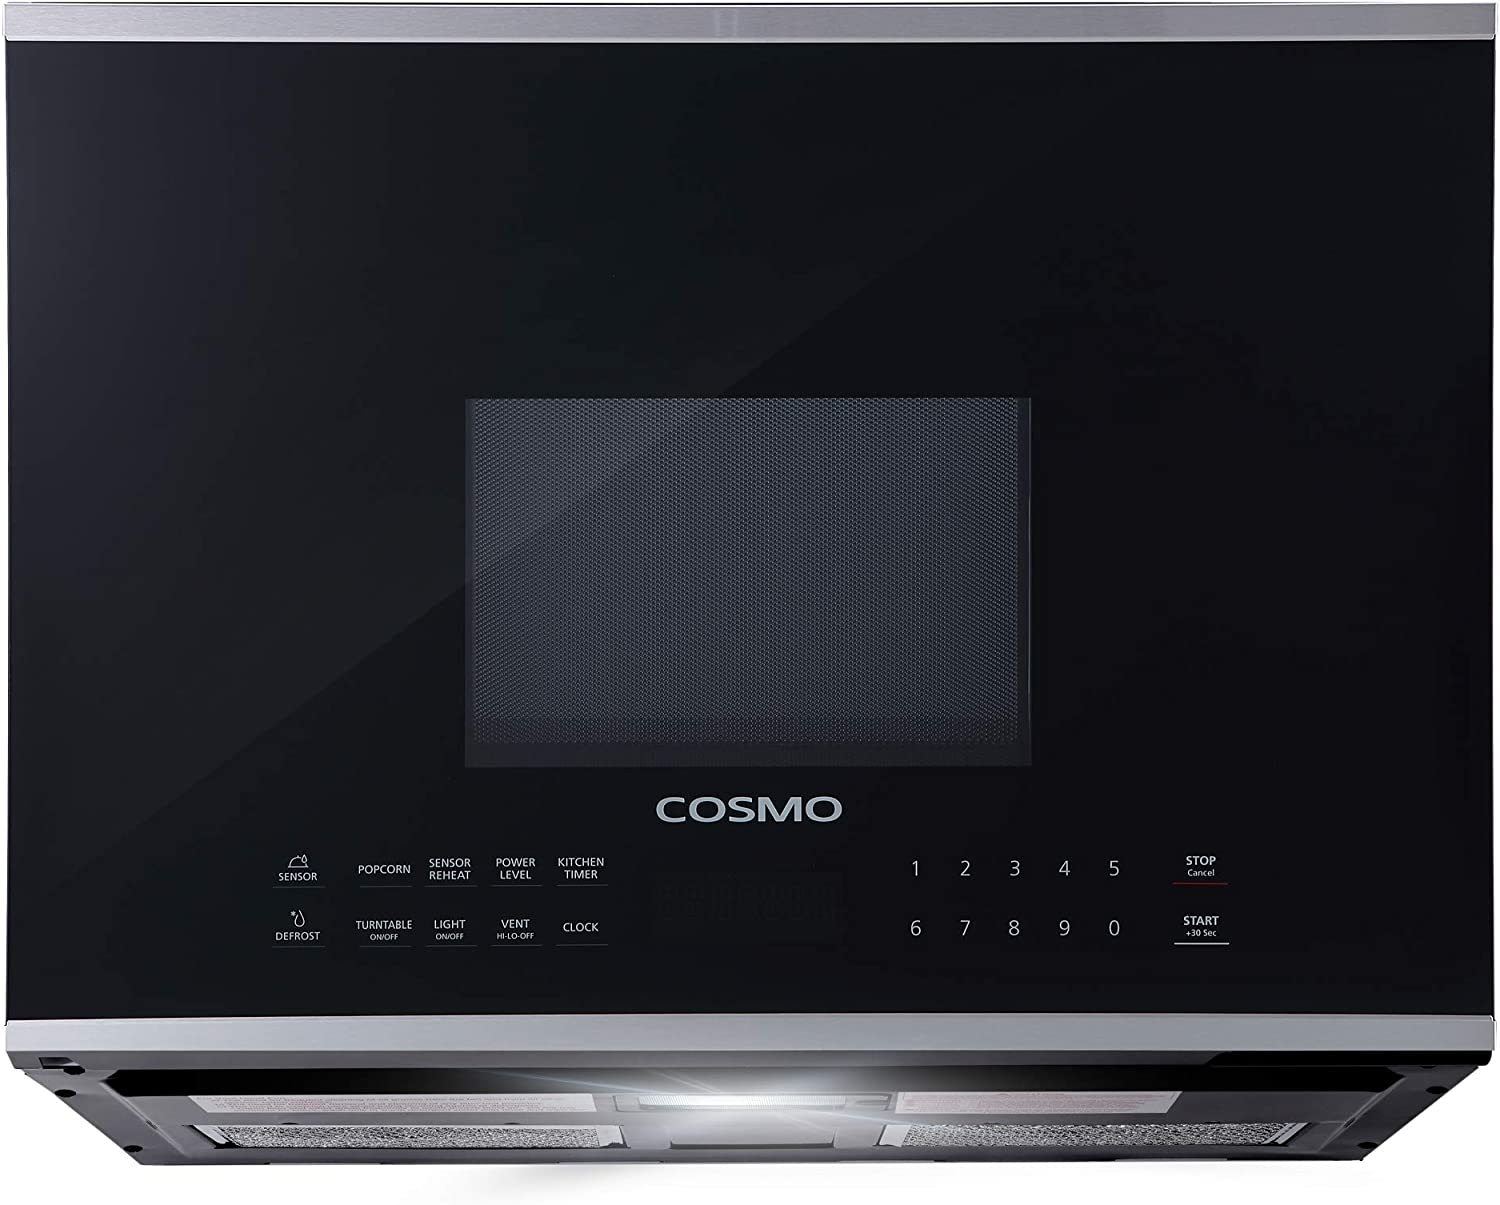 Cosmo COS-2413ORM1SS Over The Range Microwave Oven with Vent Fan, Touch Presets, Sensor Cook and Reheat, 10 Power Levels, 1000W & 1.34 cu. ft. Capacity, 24 inch, Black/Stainless Steel